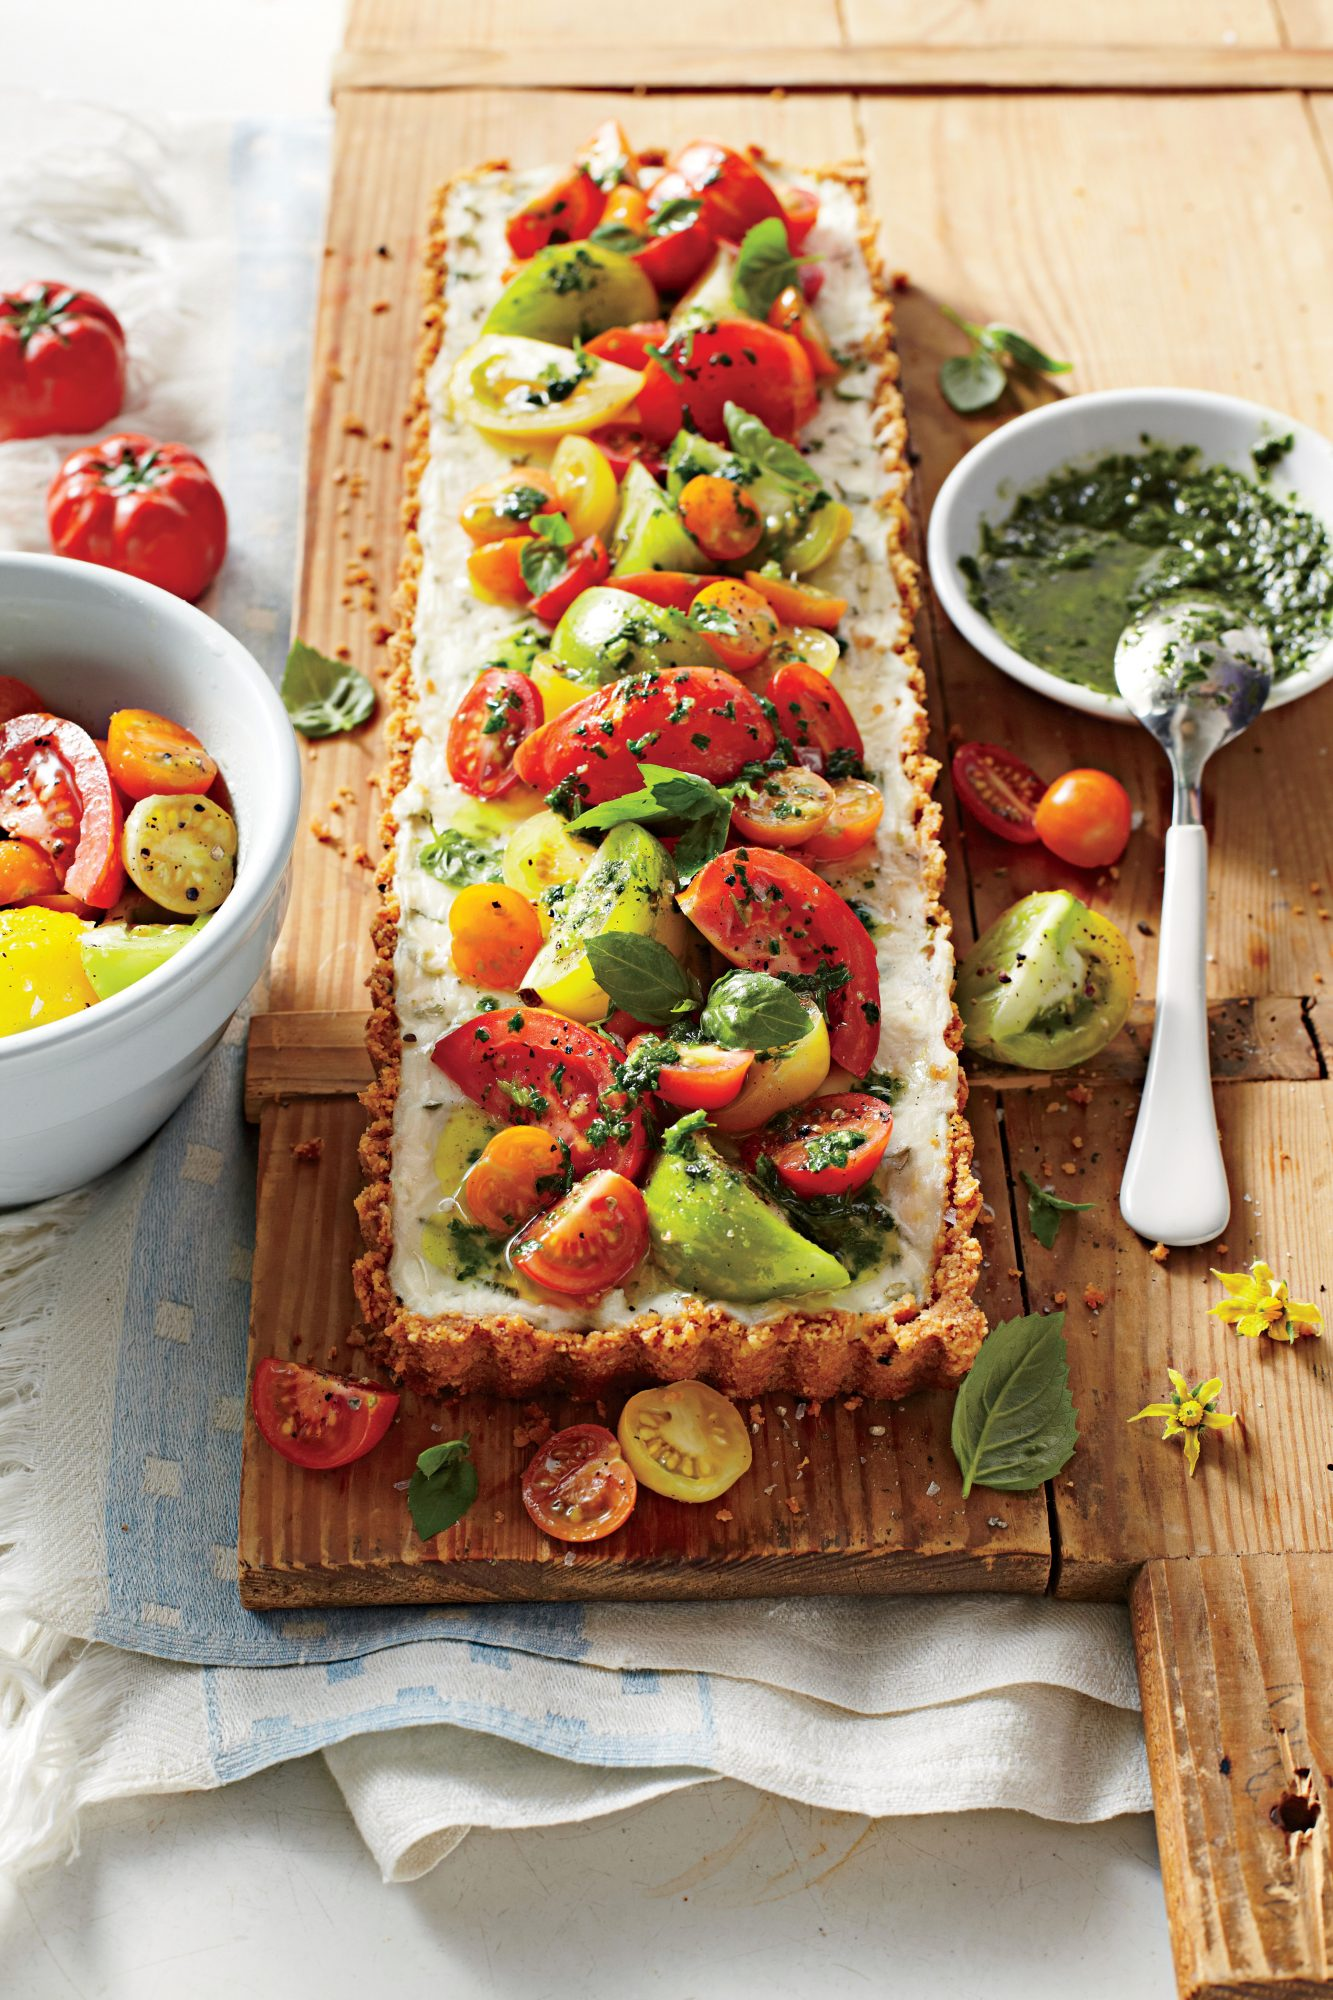 Tomato-Goat Cheese Tart with Lemon-Basil Vinaigrette Recipe